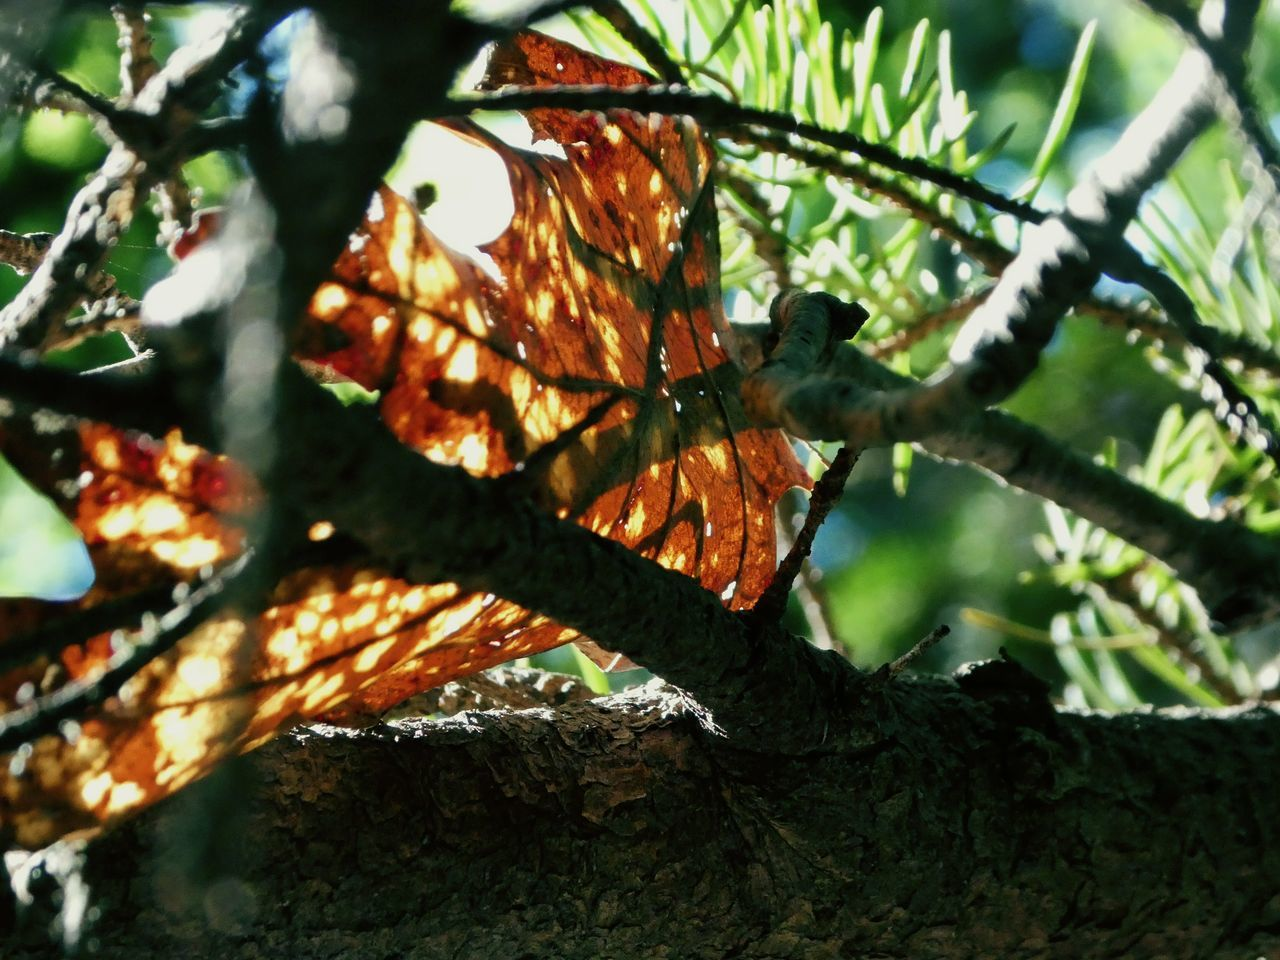 Pine Needles Branches Low Angle View Tree Trunk Sunlight Close-up Branch Selective Focus No People Outdoors Beauty In Nature Autumn 2016 Autumleaf One Red Leaf Sunlight Through The Gaps Brightsun Tree Nature